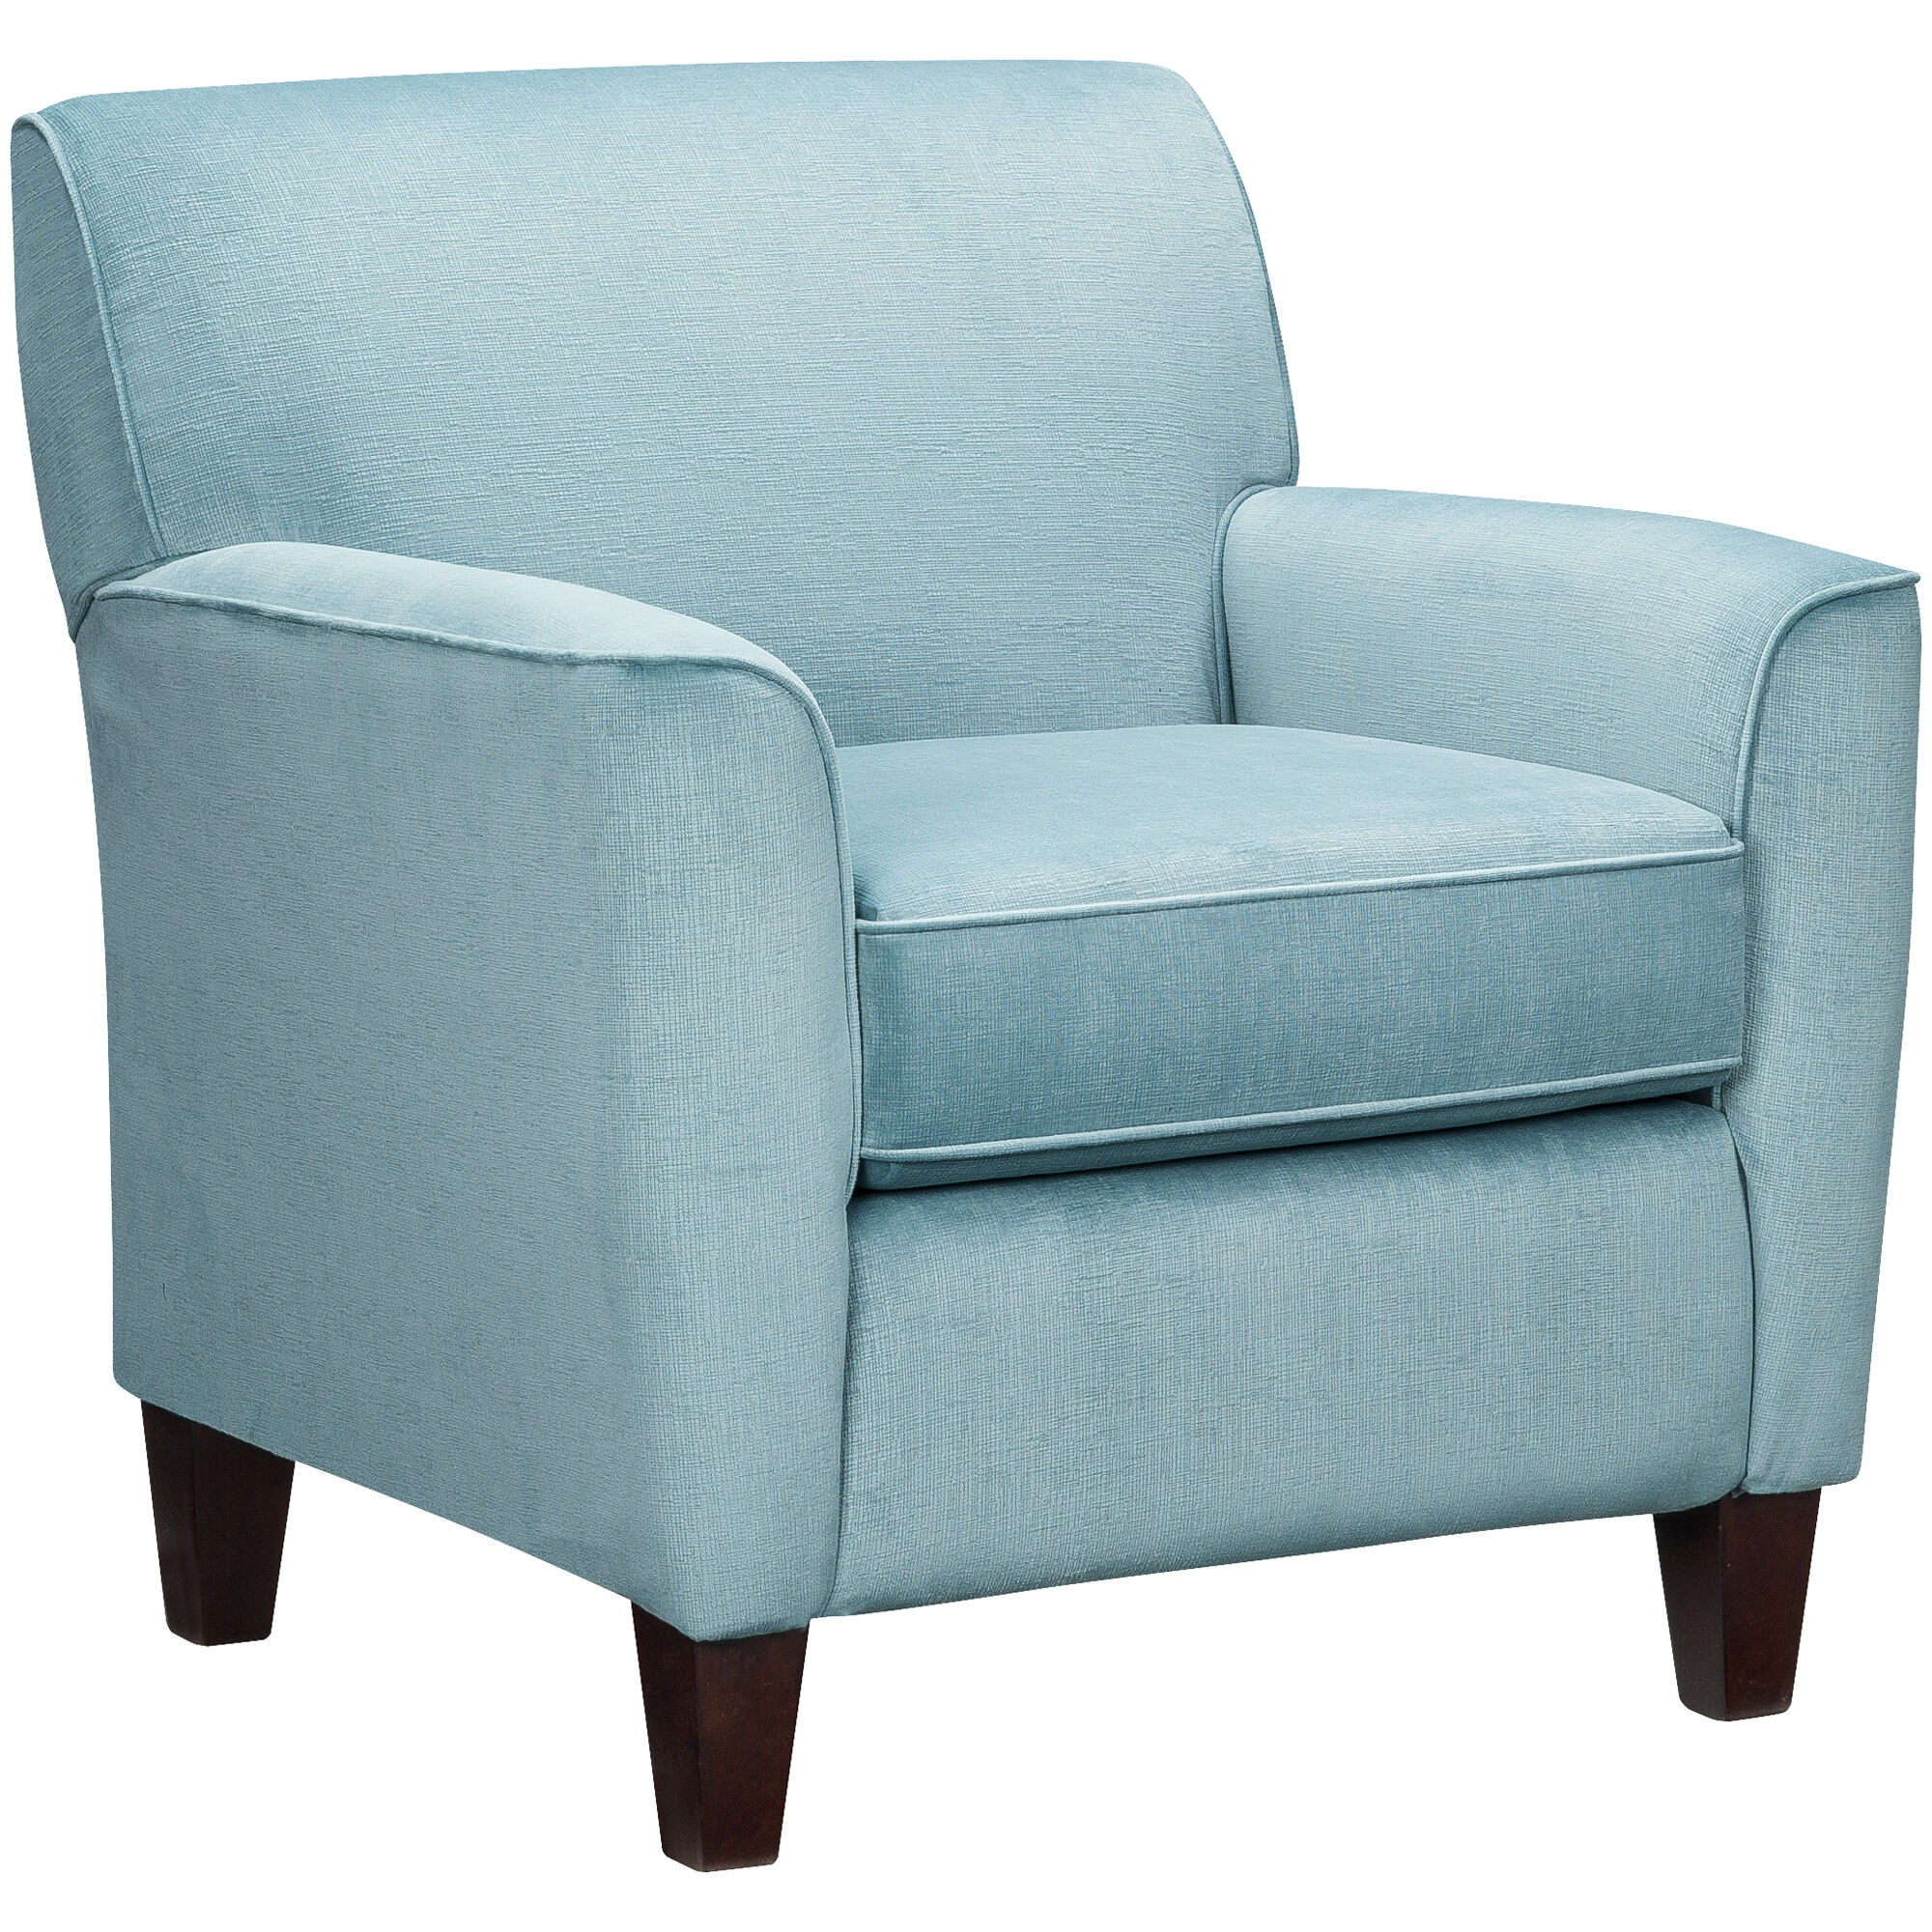 Risa Aqua Accent Chair; Risa Aqua Accent Chair ...